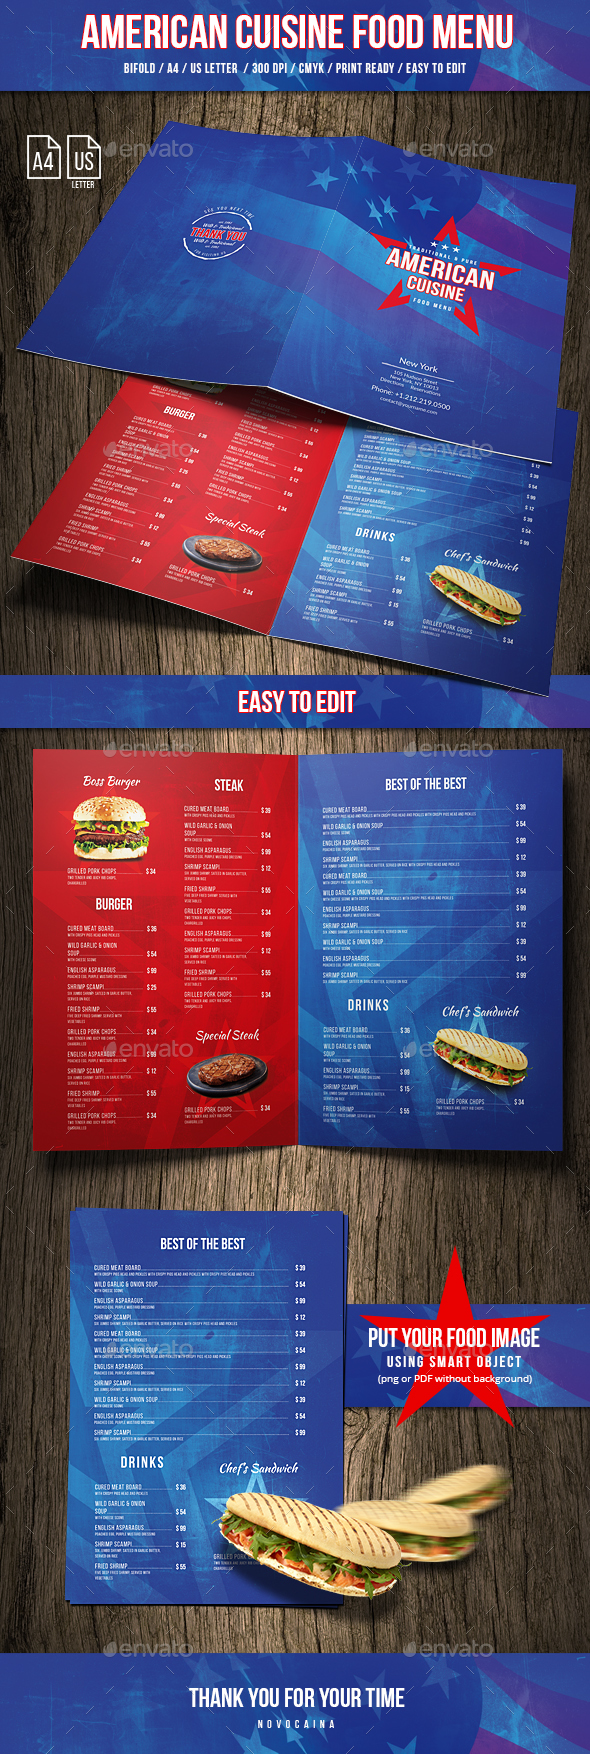 American Cuisine Food Menu A4 & US Letter - Food Menus Print Templates